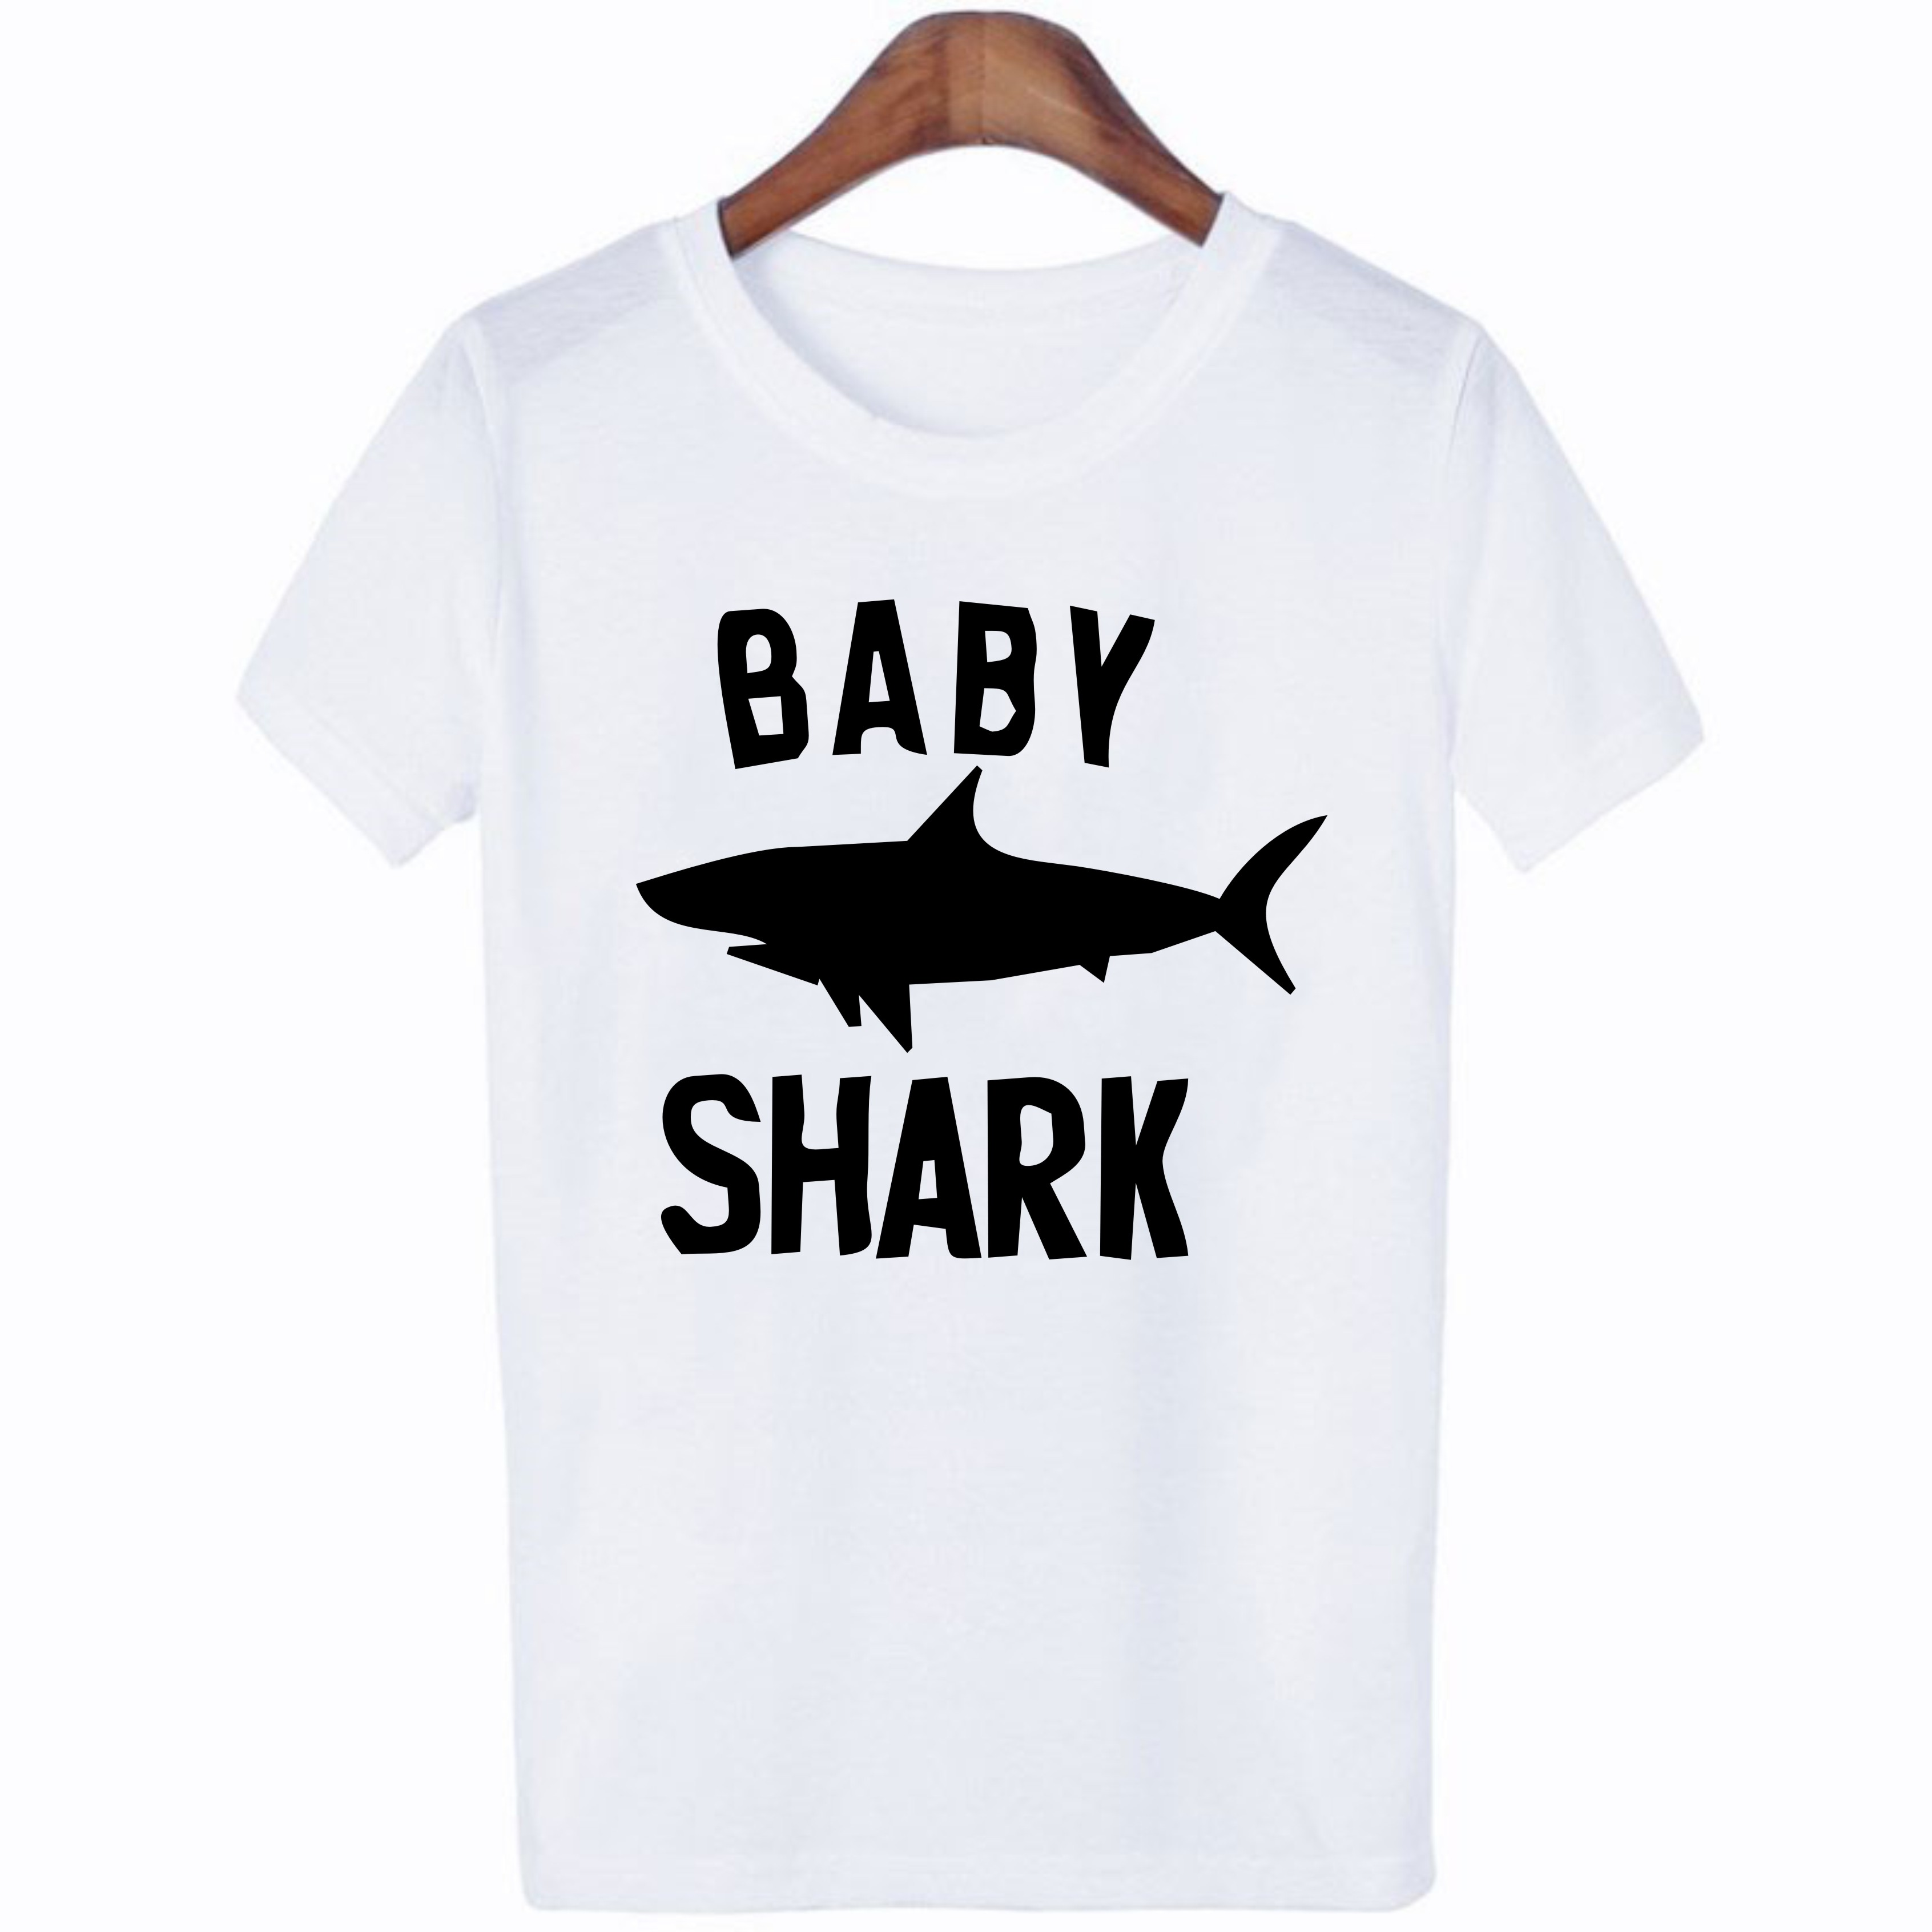 Summer Shark Family Matching Clothes T Shirt Mother Son Dad Girl T Shirts Kids Baby Girl Boys Romper T Shirt Outfits QT-1934 2